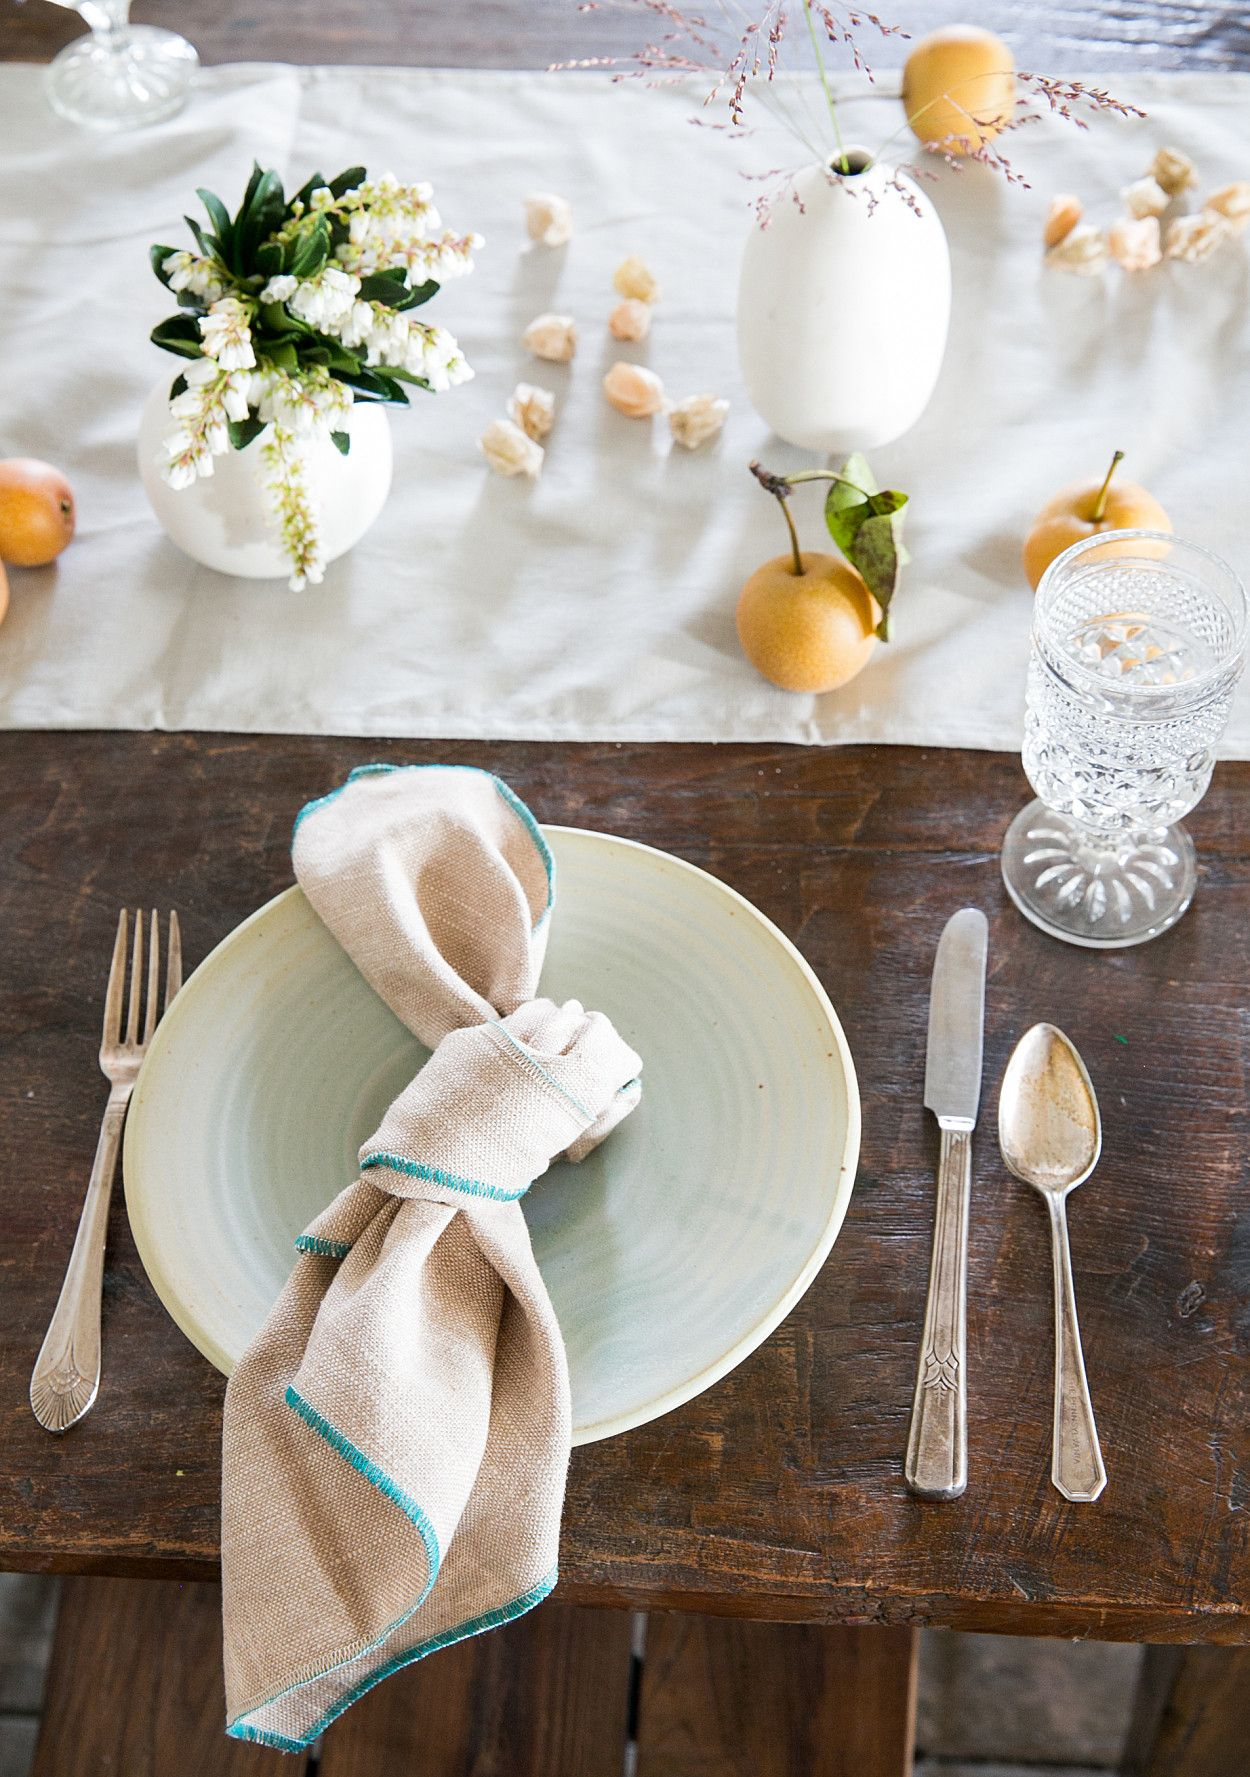 How To Fold A Napkin In 10 Beautiful Ways Easy Napkin Folding